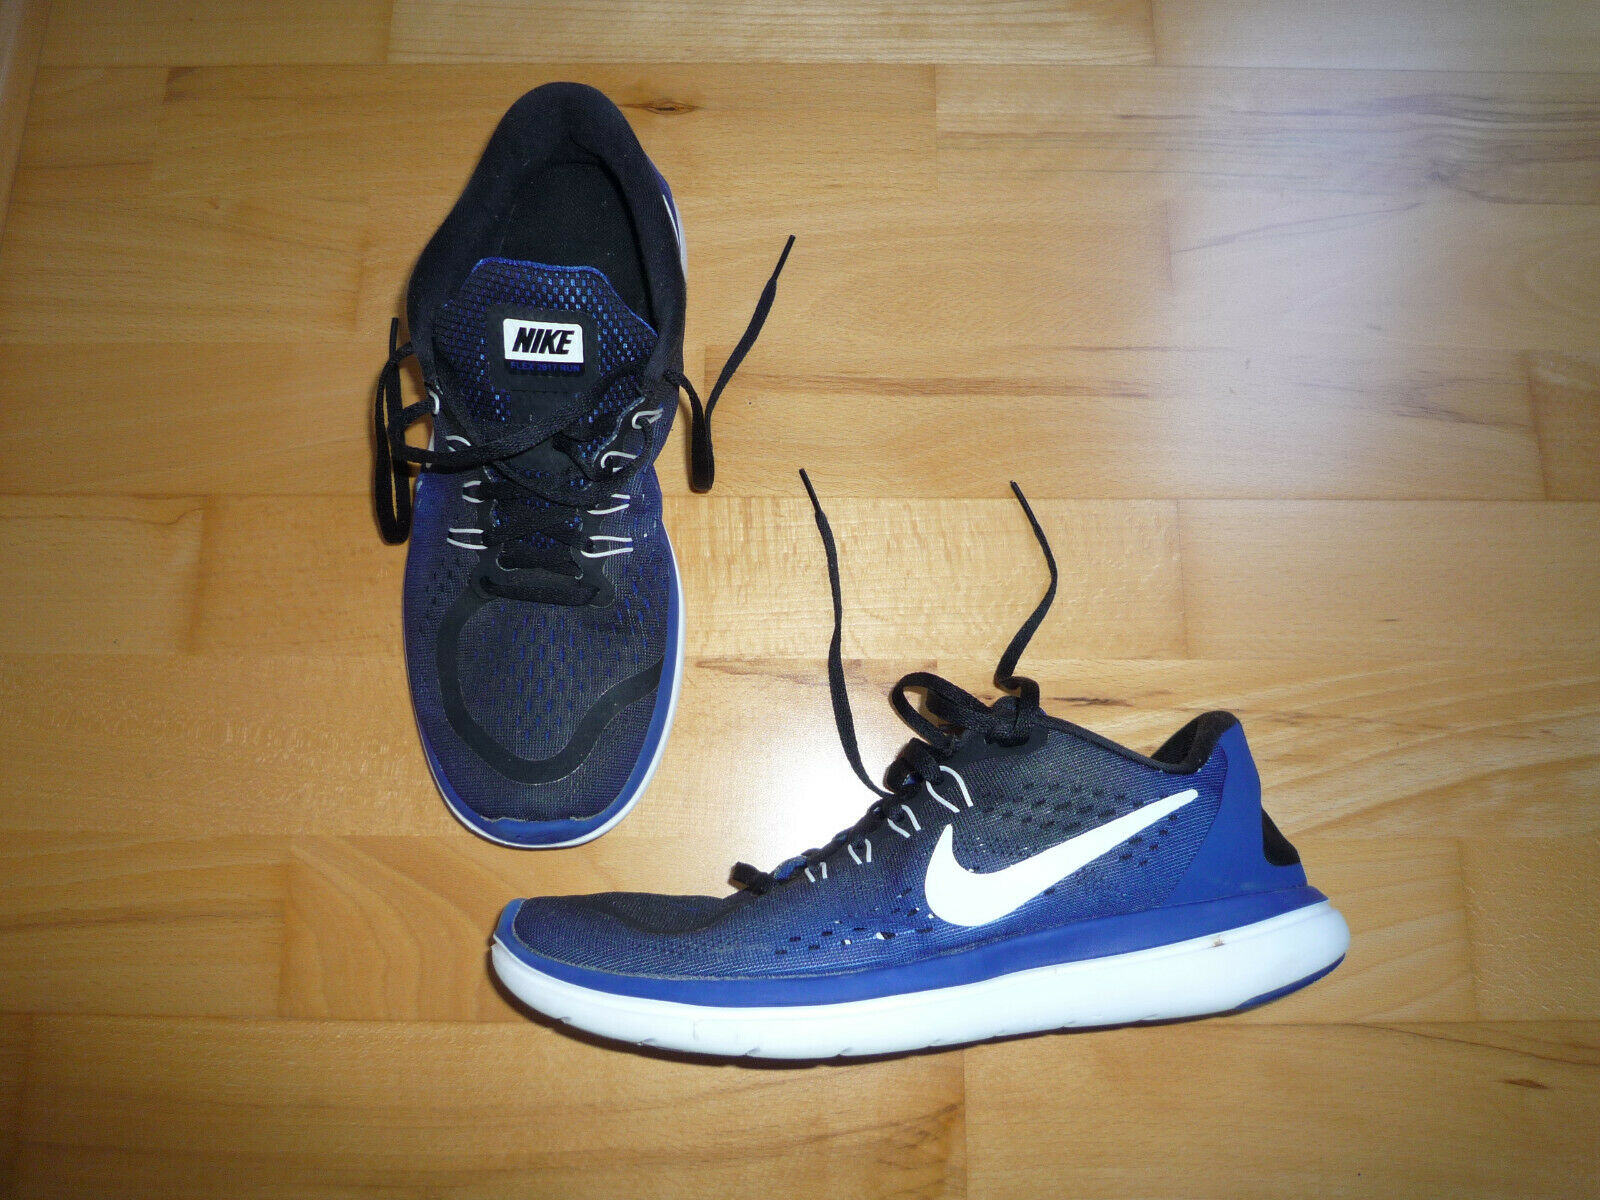 NIKE Free Run 2 TOP Zustand, coole Farbe Gr. 43 US 9,5 UK 8,5